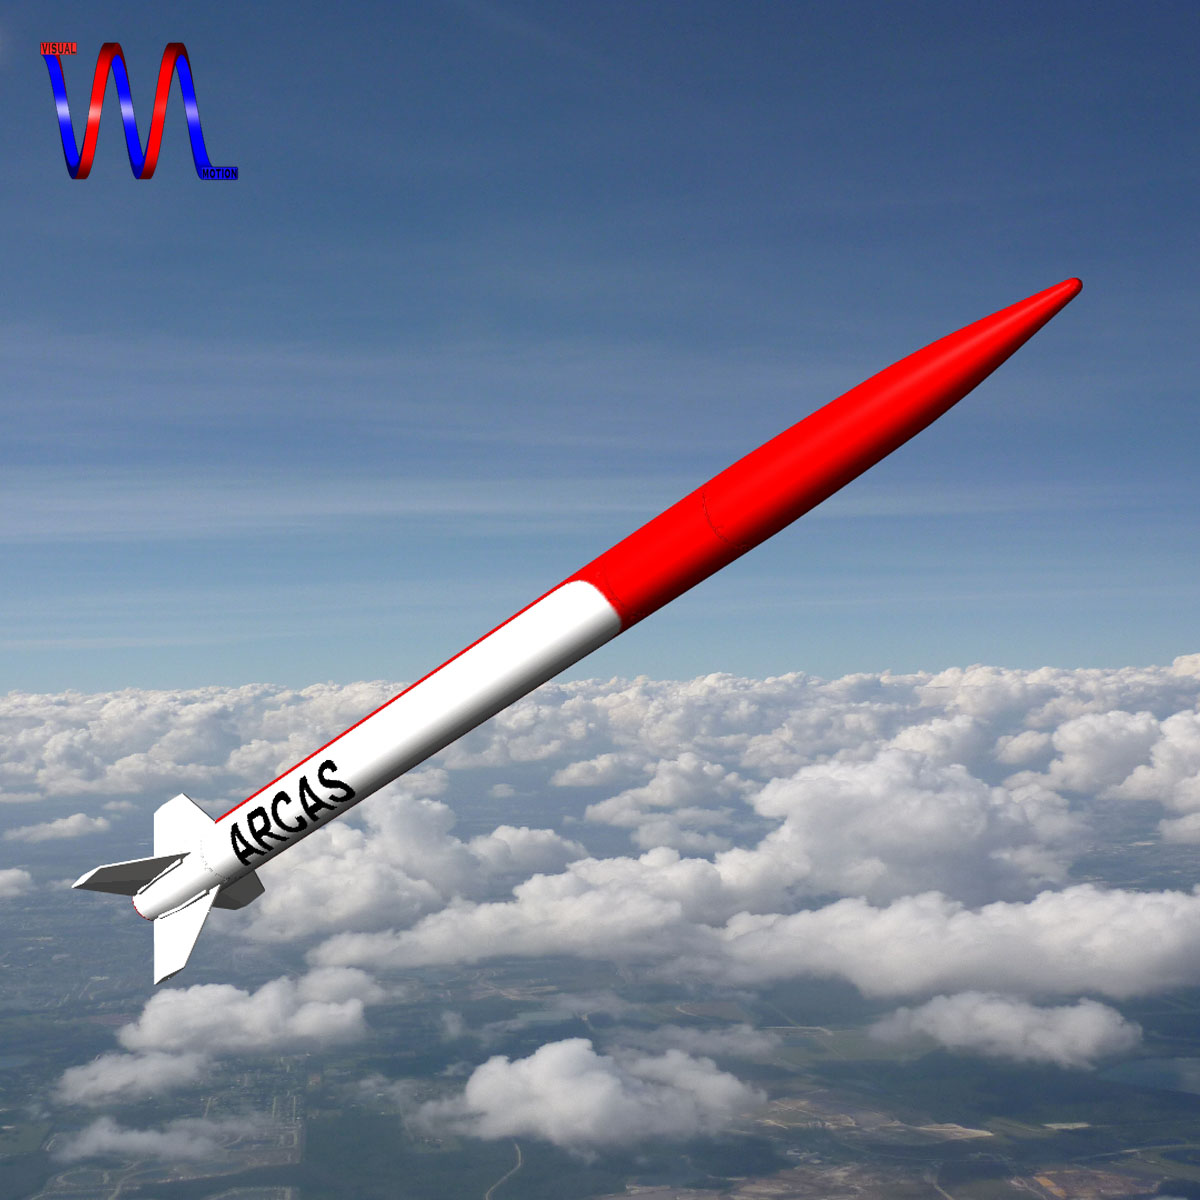 us arcas sounding rocket 3d model 3ds dxf cob x obj 155402